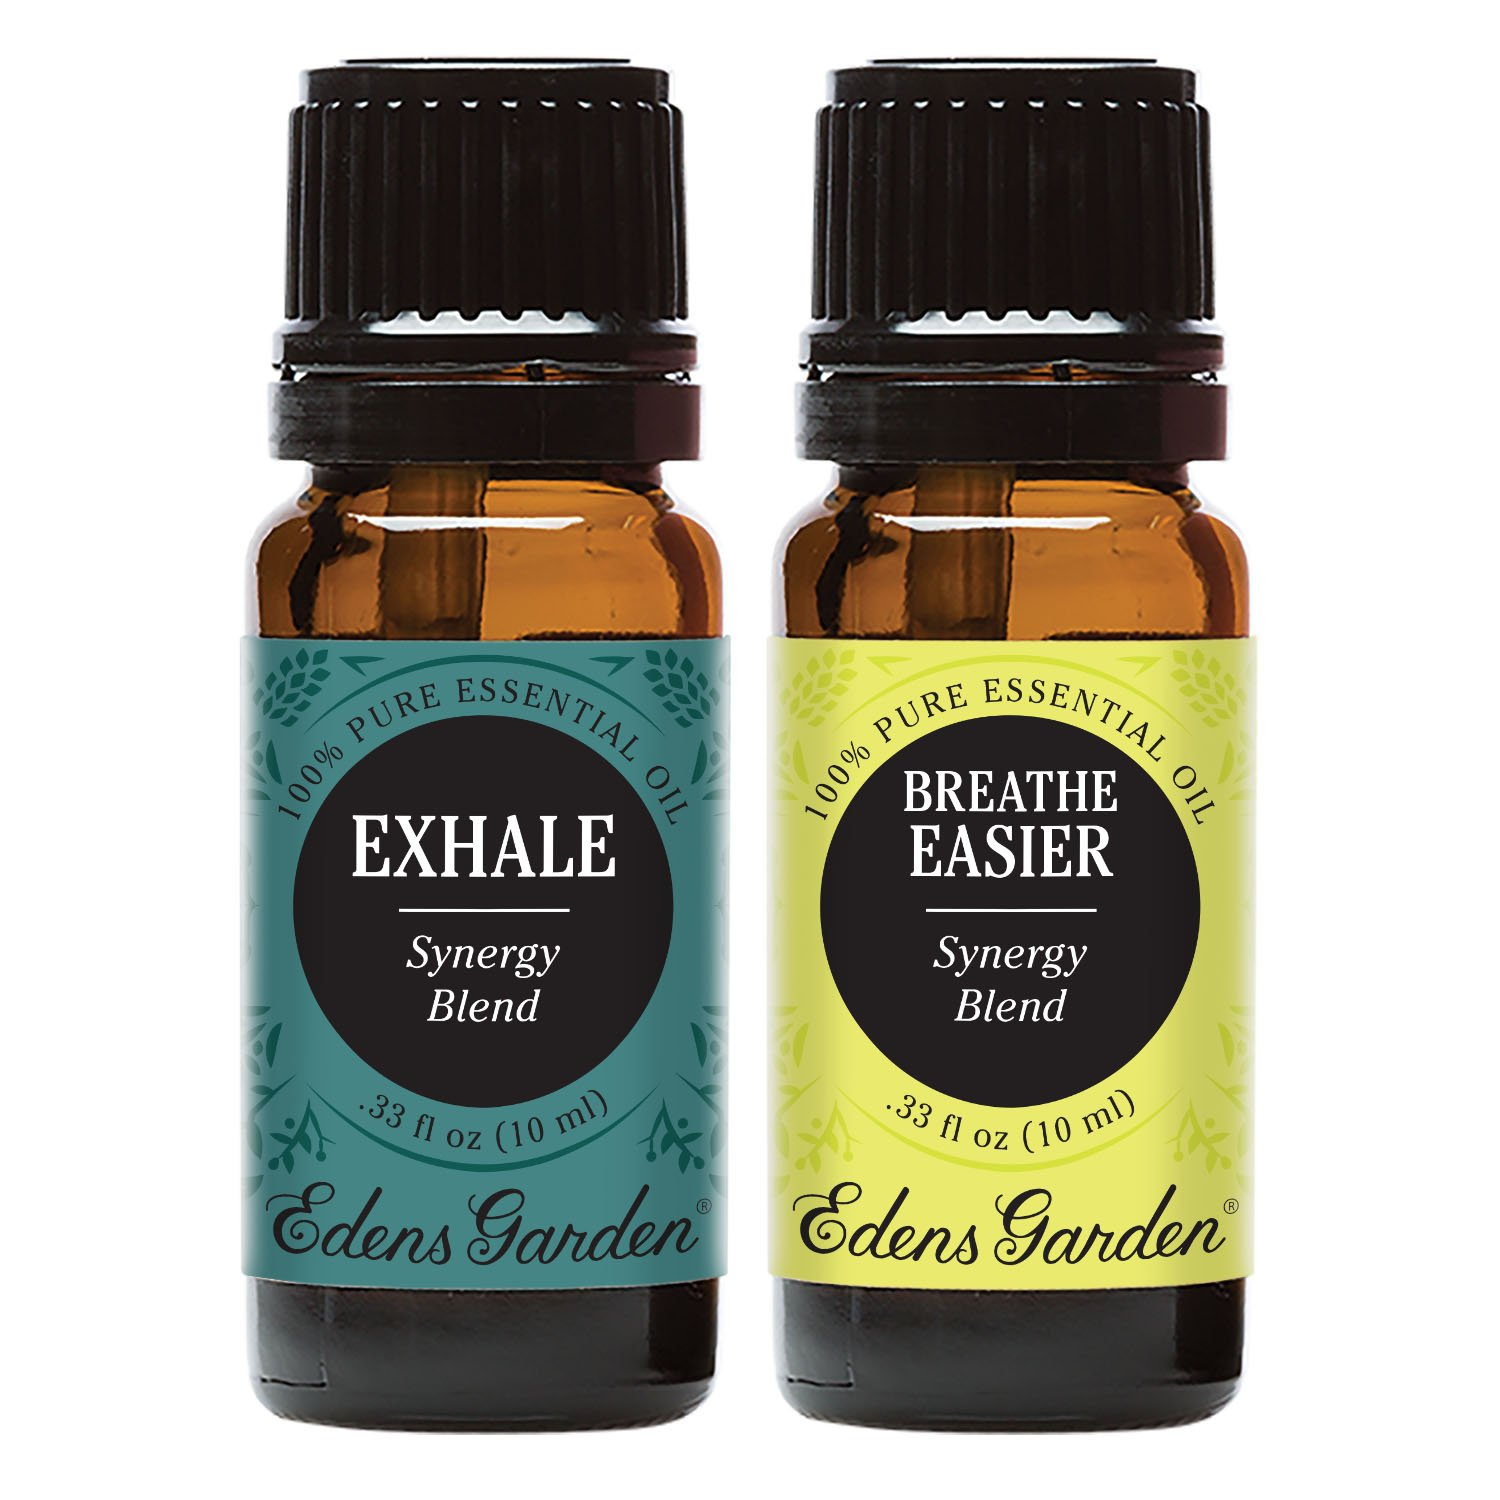 Exhale + Breathe Easier Value Pack 100% Pure Therapeutic Grade Essential Oil by Edens Garden- 2 Set 10 ml